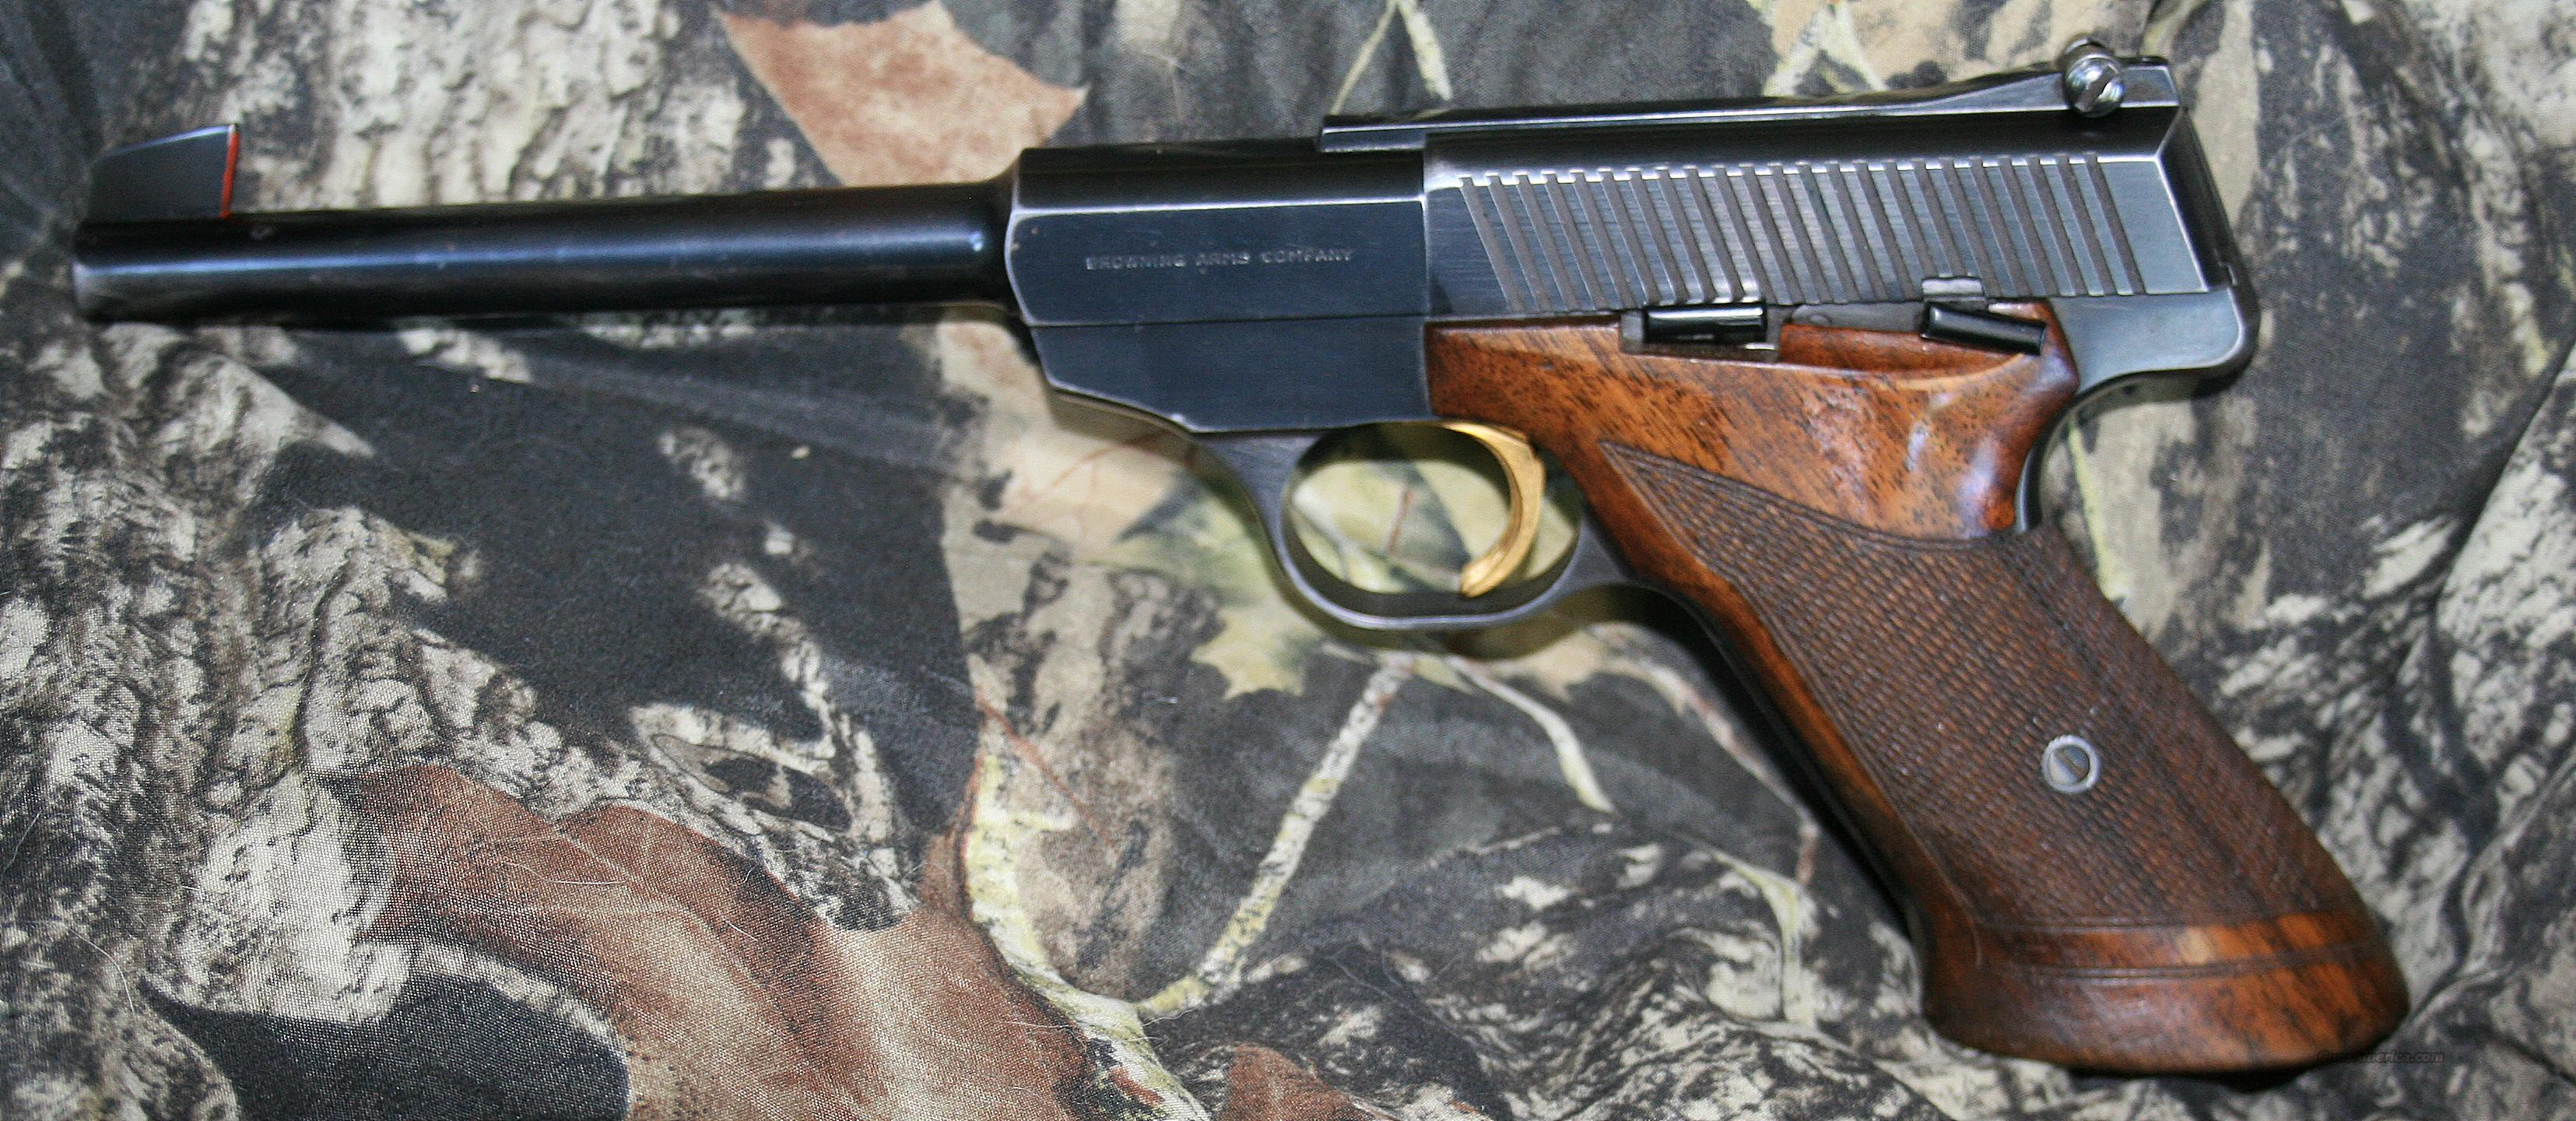 Browning Challenger Made in Belgium .22LR Semi-Automatic Pistol   Guns > Pistols > Browning Pistols > Other Autos